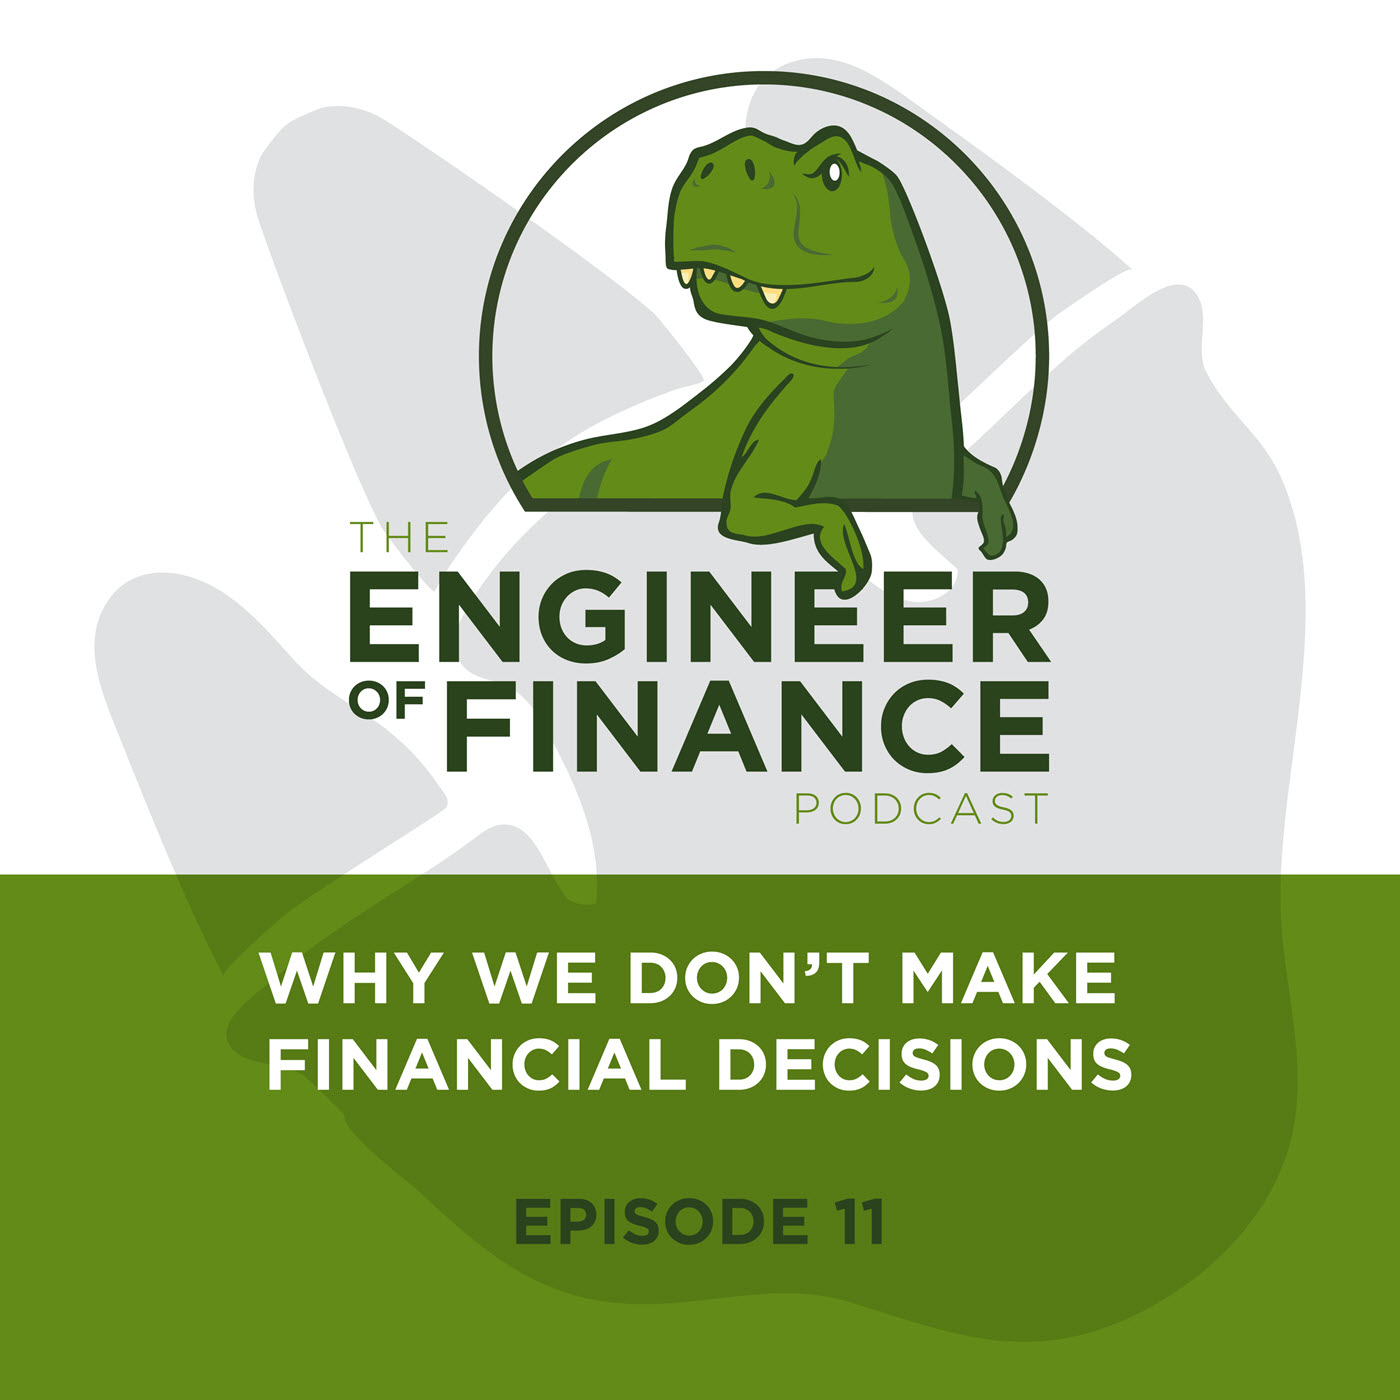 Why We Don't Make Financial Decisions – Episode 11